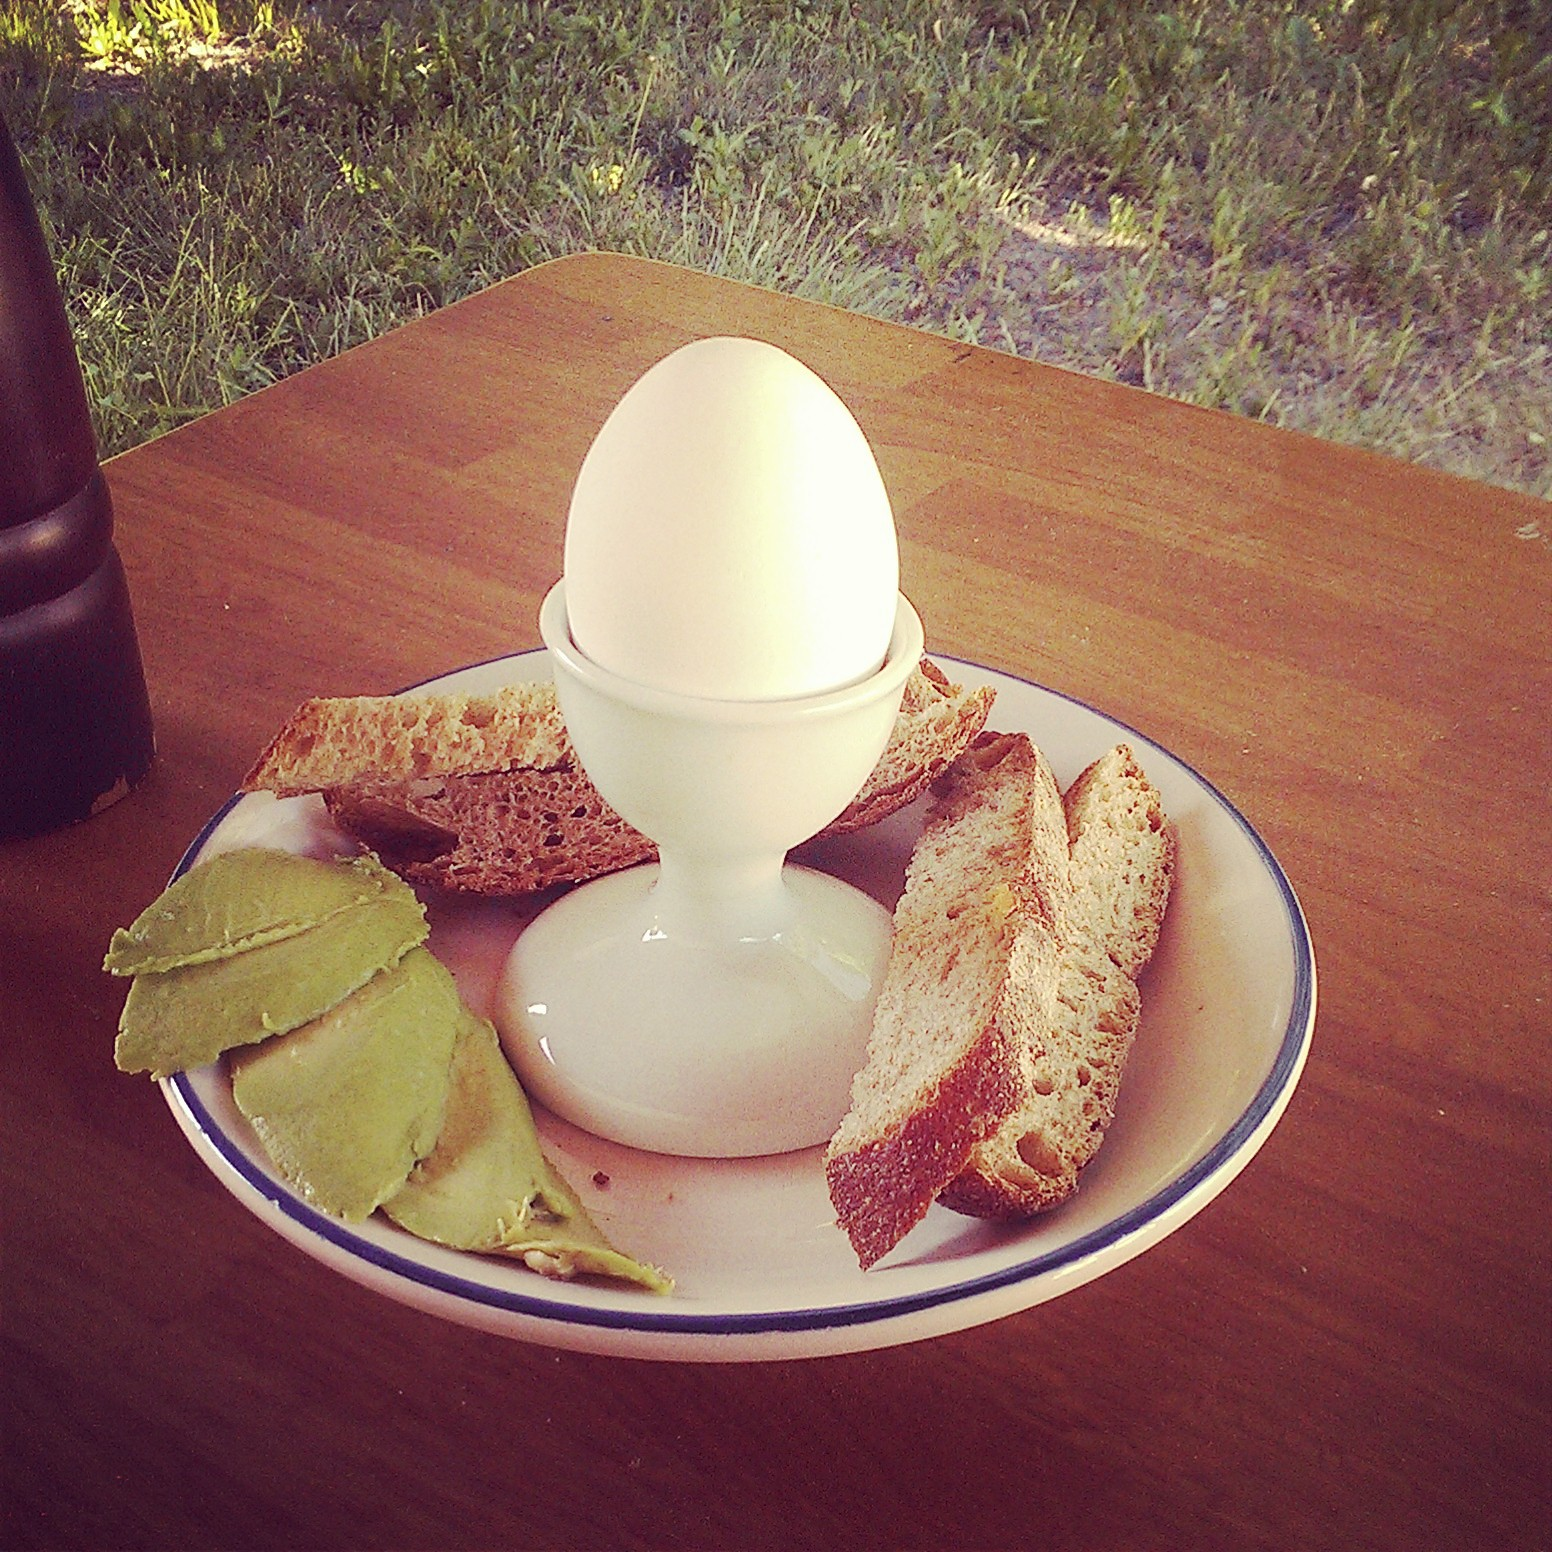 Soft-boiled egg with toast and avocado